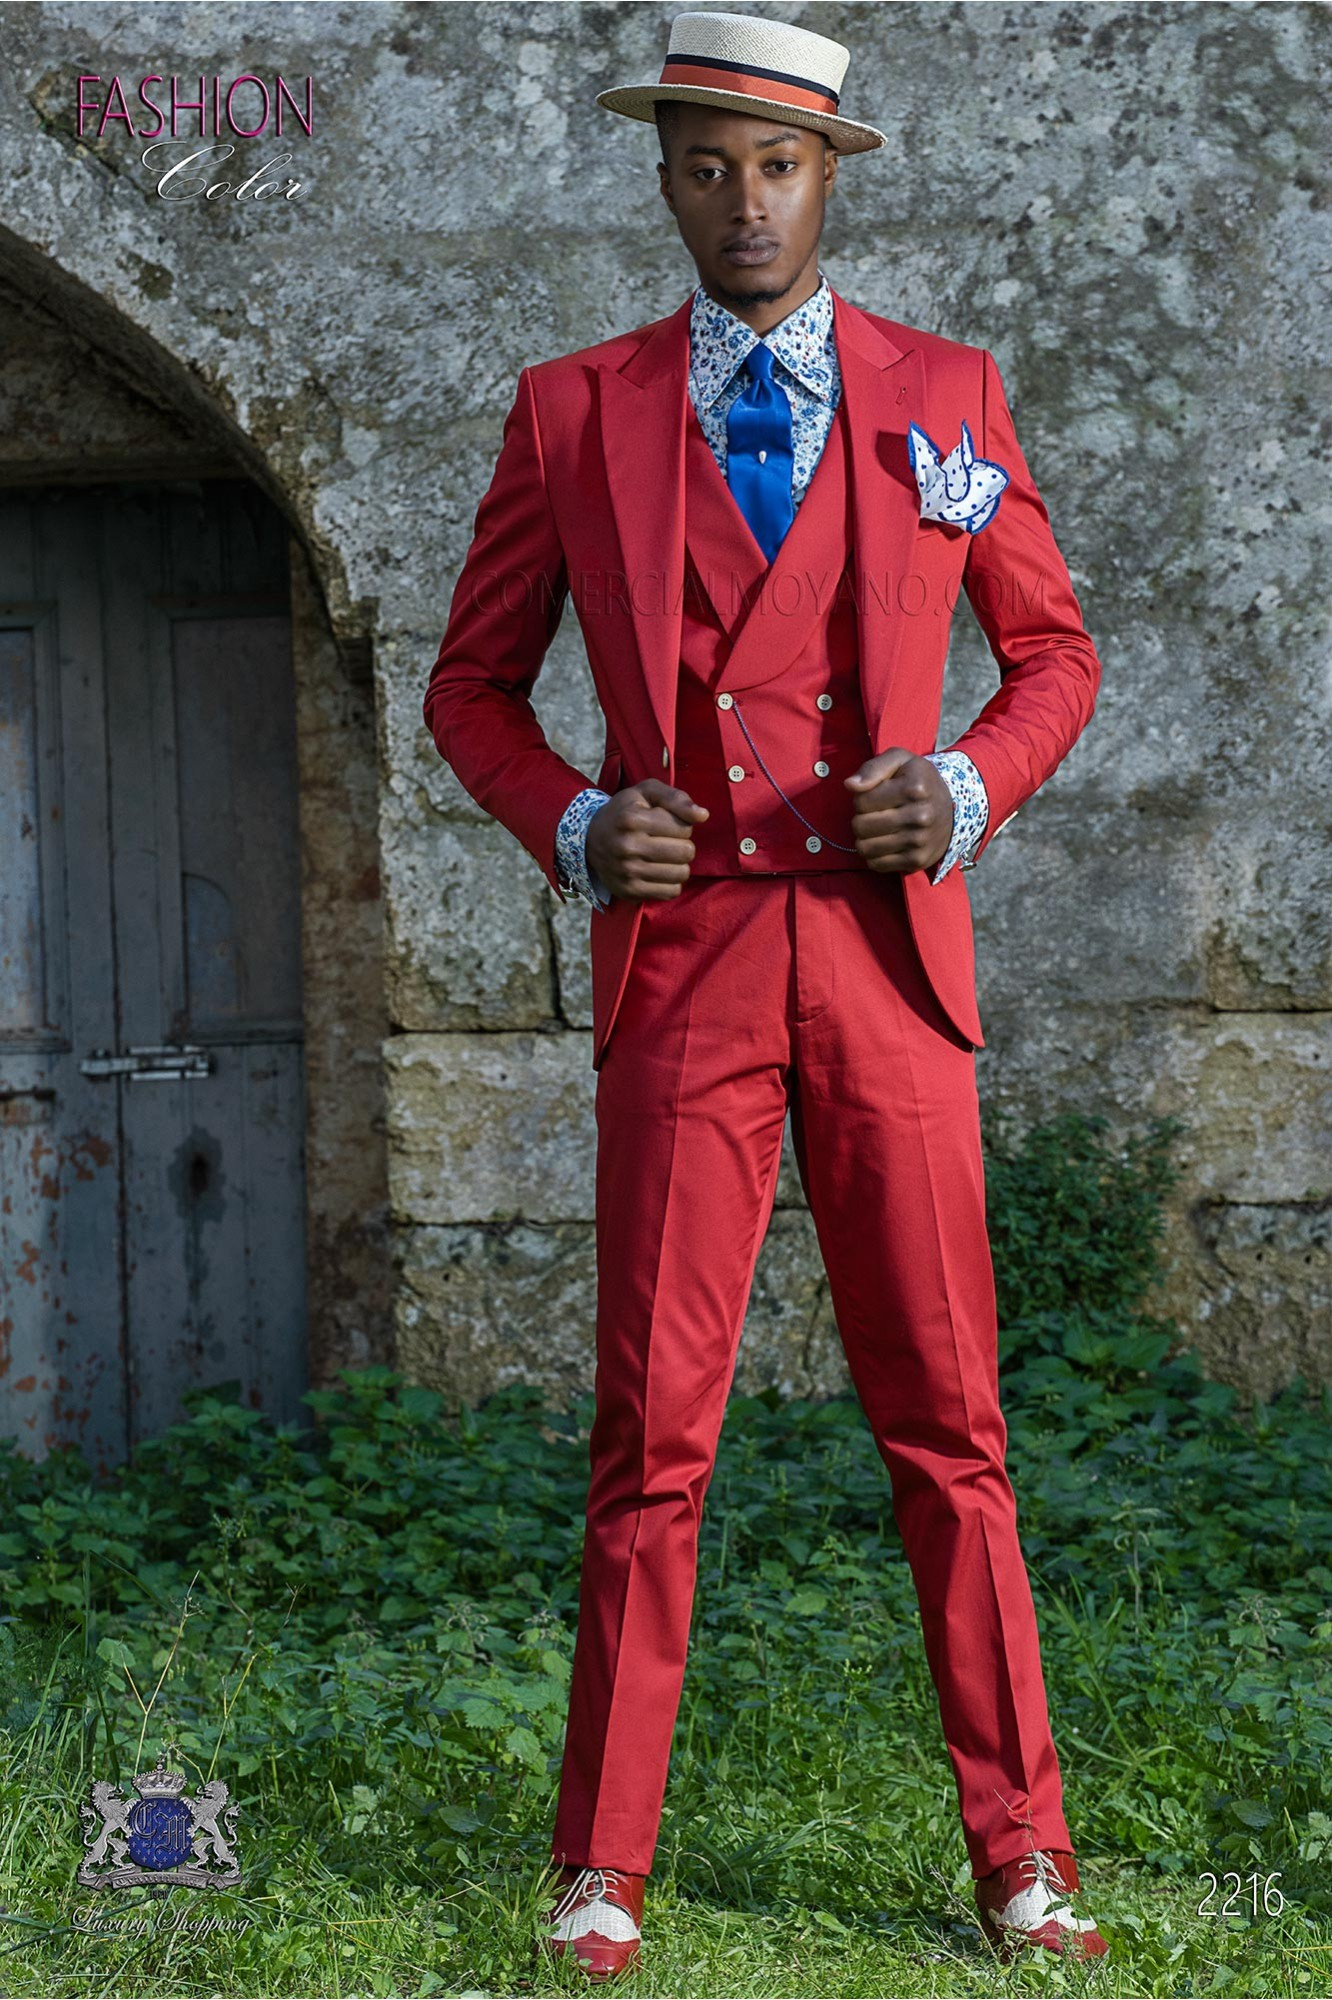 Italian fashion slim fit pure cotton red wedding suit